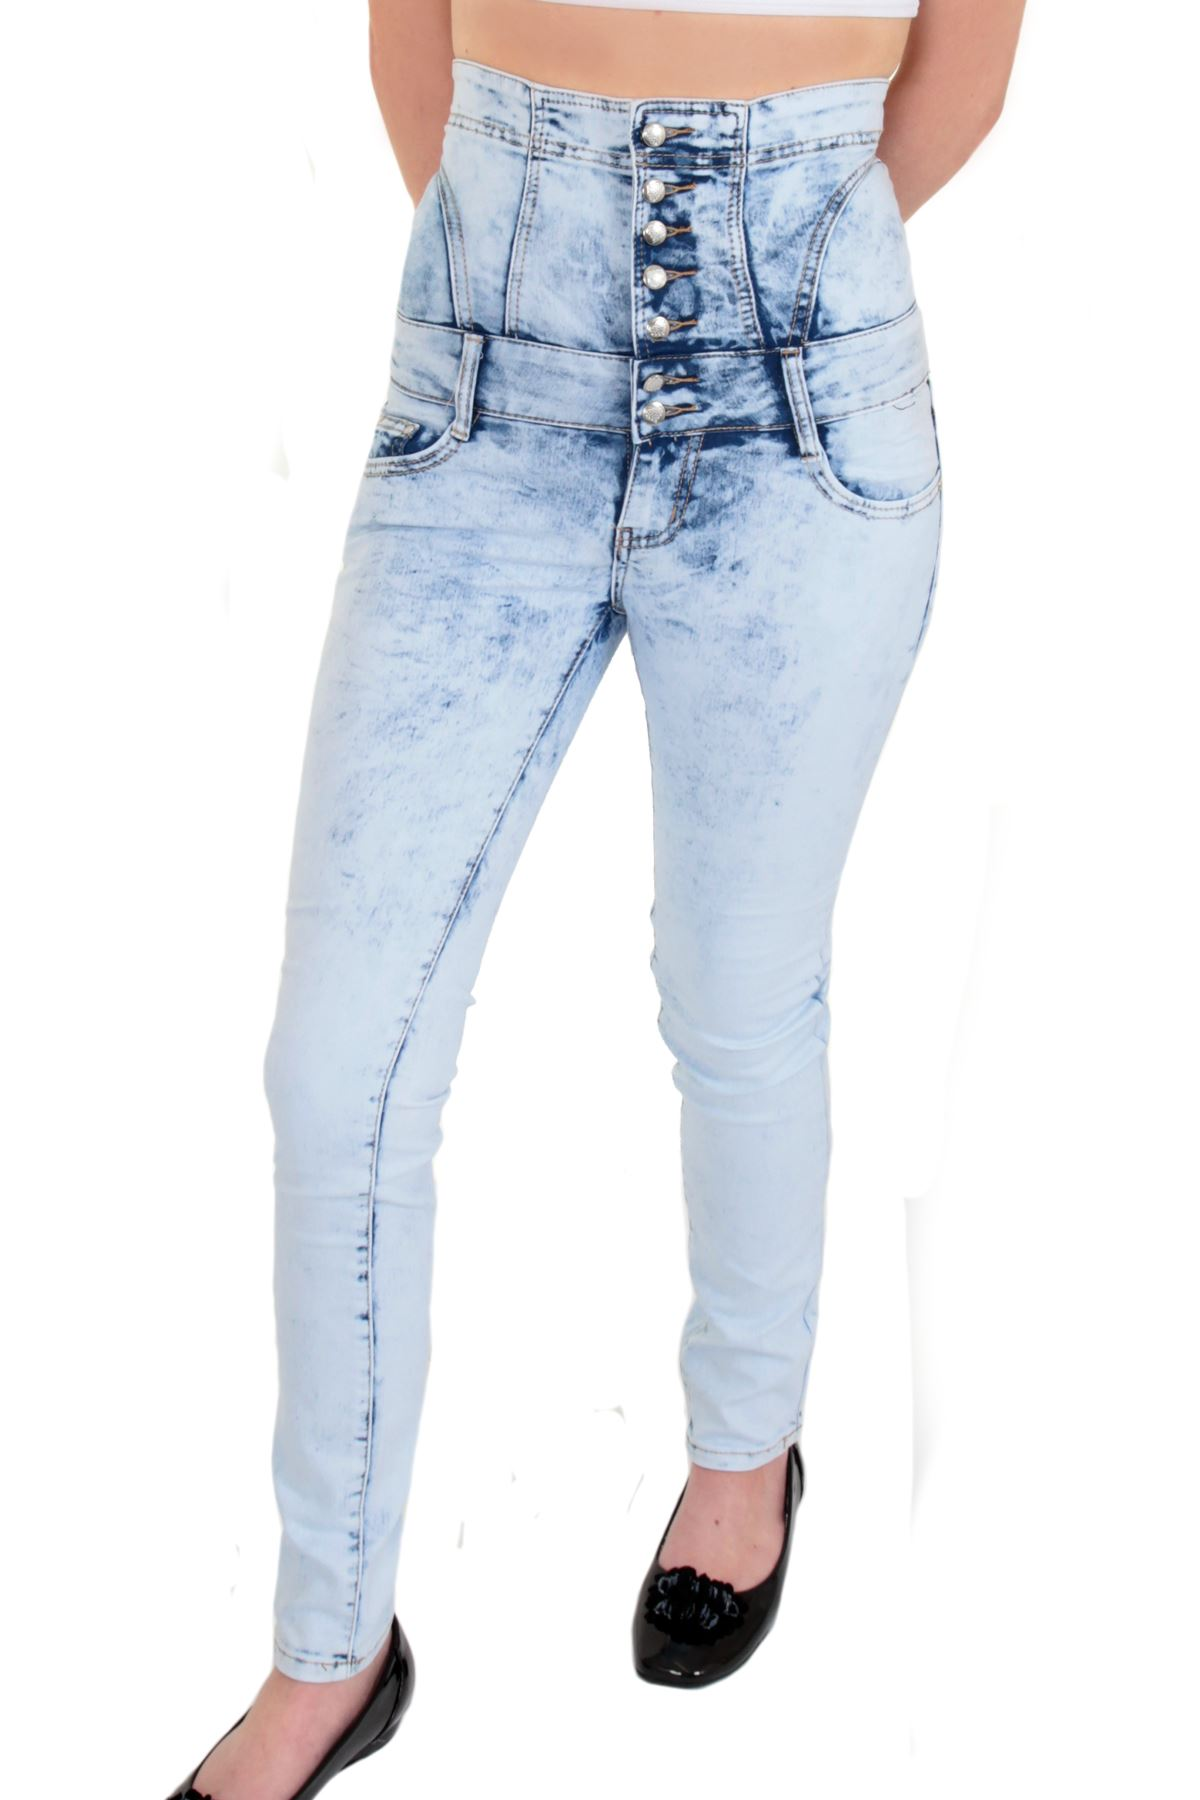 acid wash skinny jeans. Narrow Search Results. By Category. Clothing & Accessories. Clothing. Pants. Women's Pants. Men's Pants. Girls' Pants. Vehicle Parts & Accessories. Price. Dark Blue Acid Wash Distressed Sabine Skinny Jeans - Women